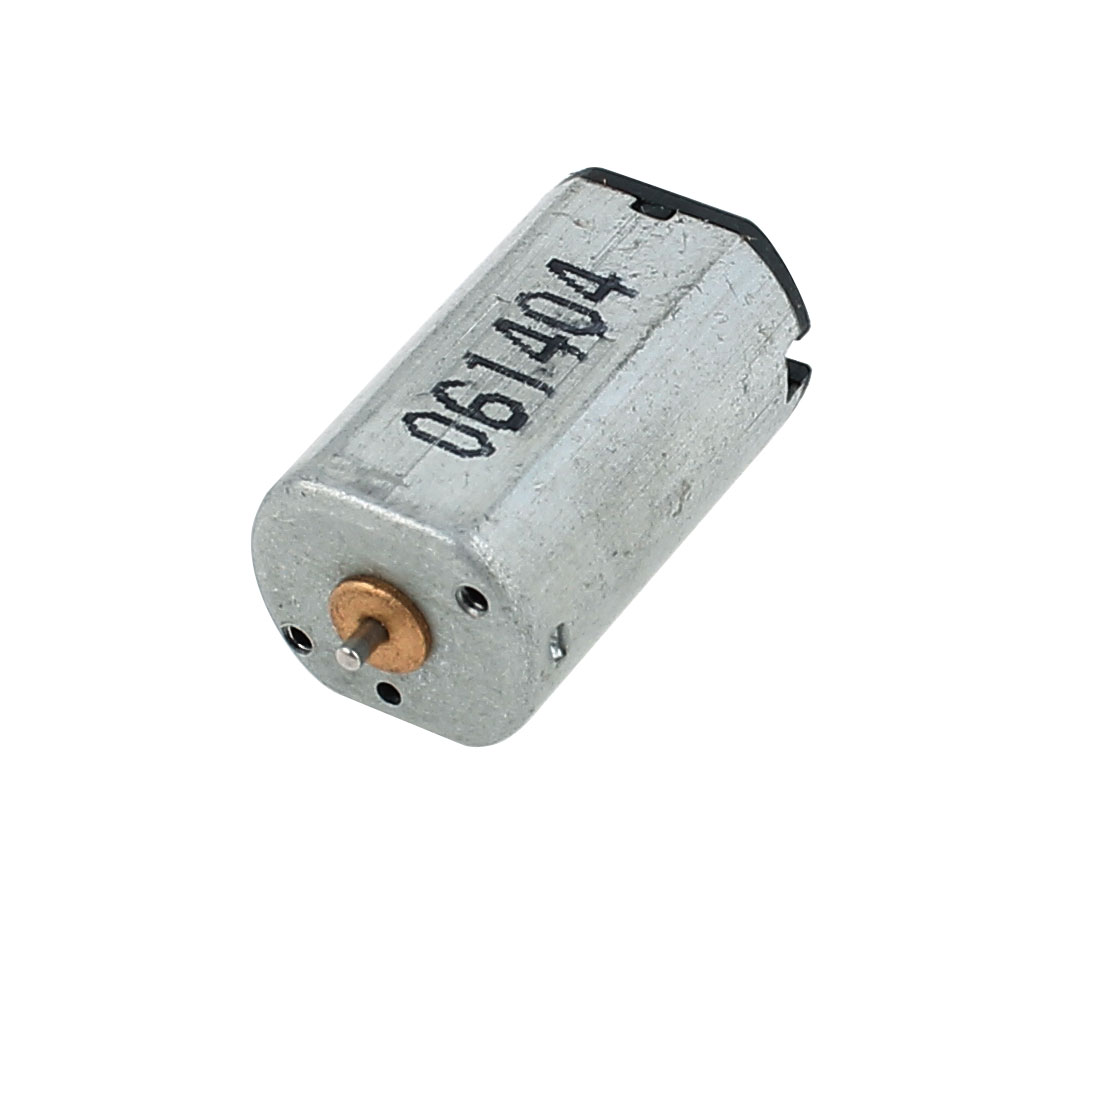 DC 3V12000RPM Output Speed Electronic Toy Mini Vibration Motor